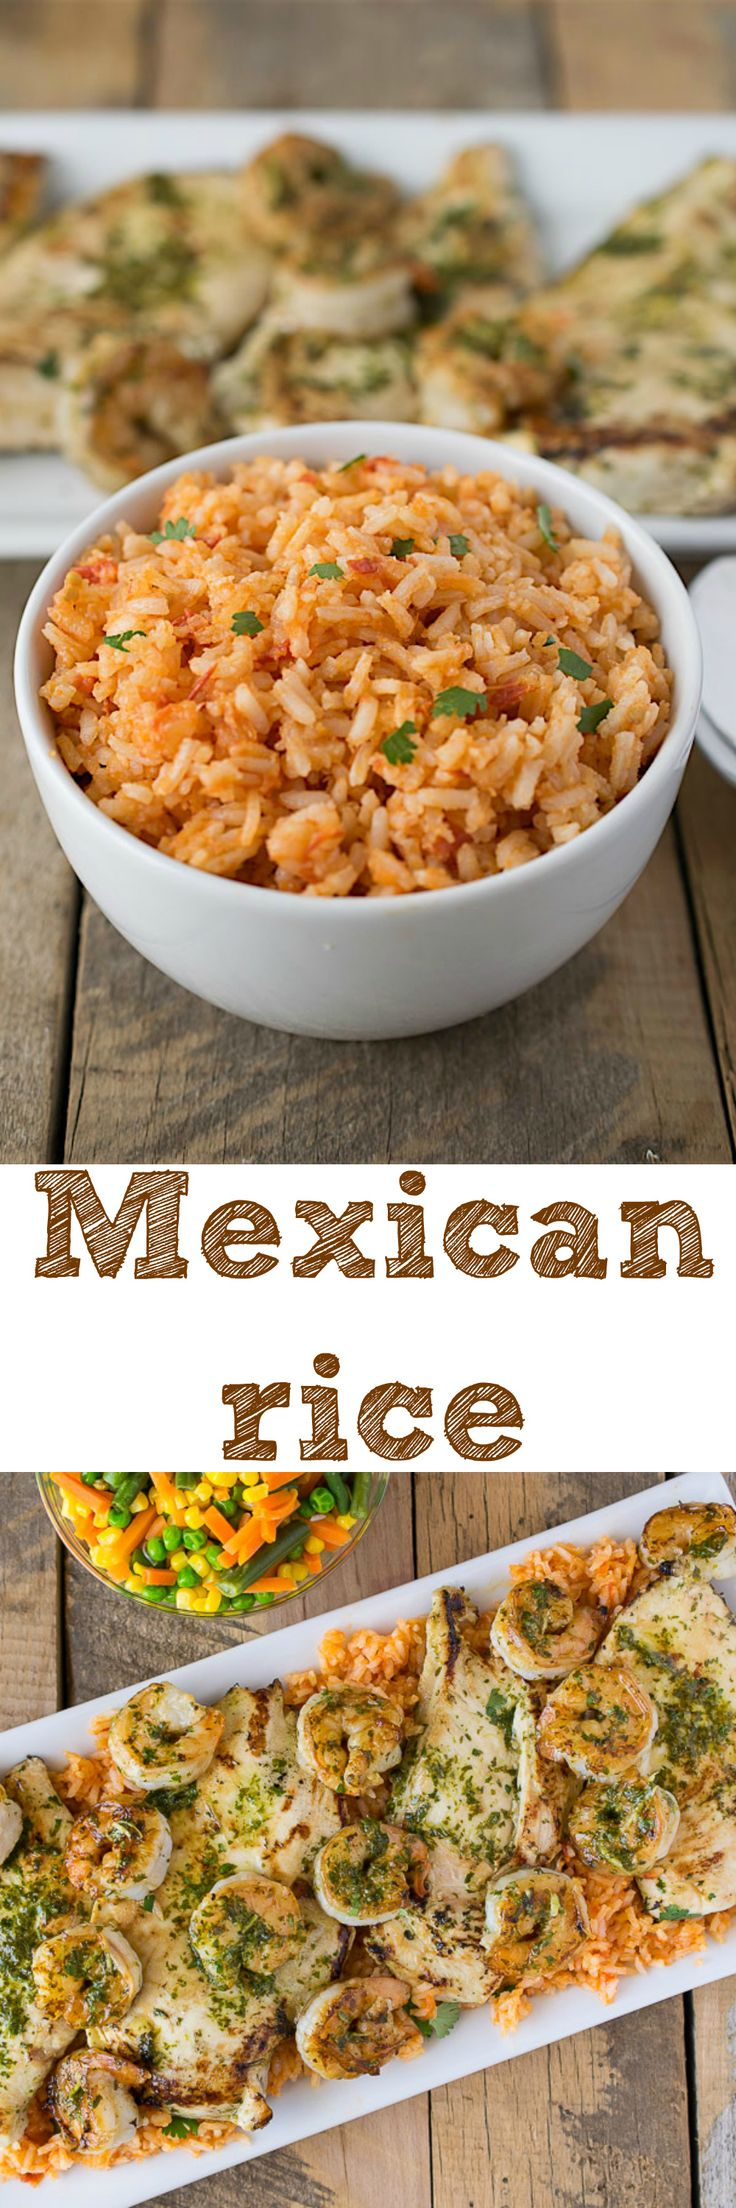 Mexican rice - A quick, easy and delicious side dish that easily be turned into leftover lunches by adding vegetables and chicken or shrimp